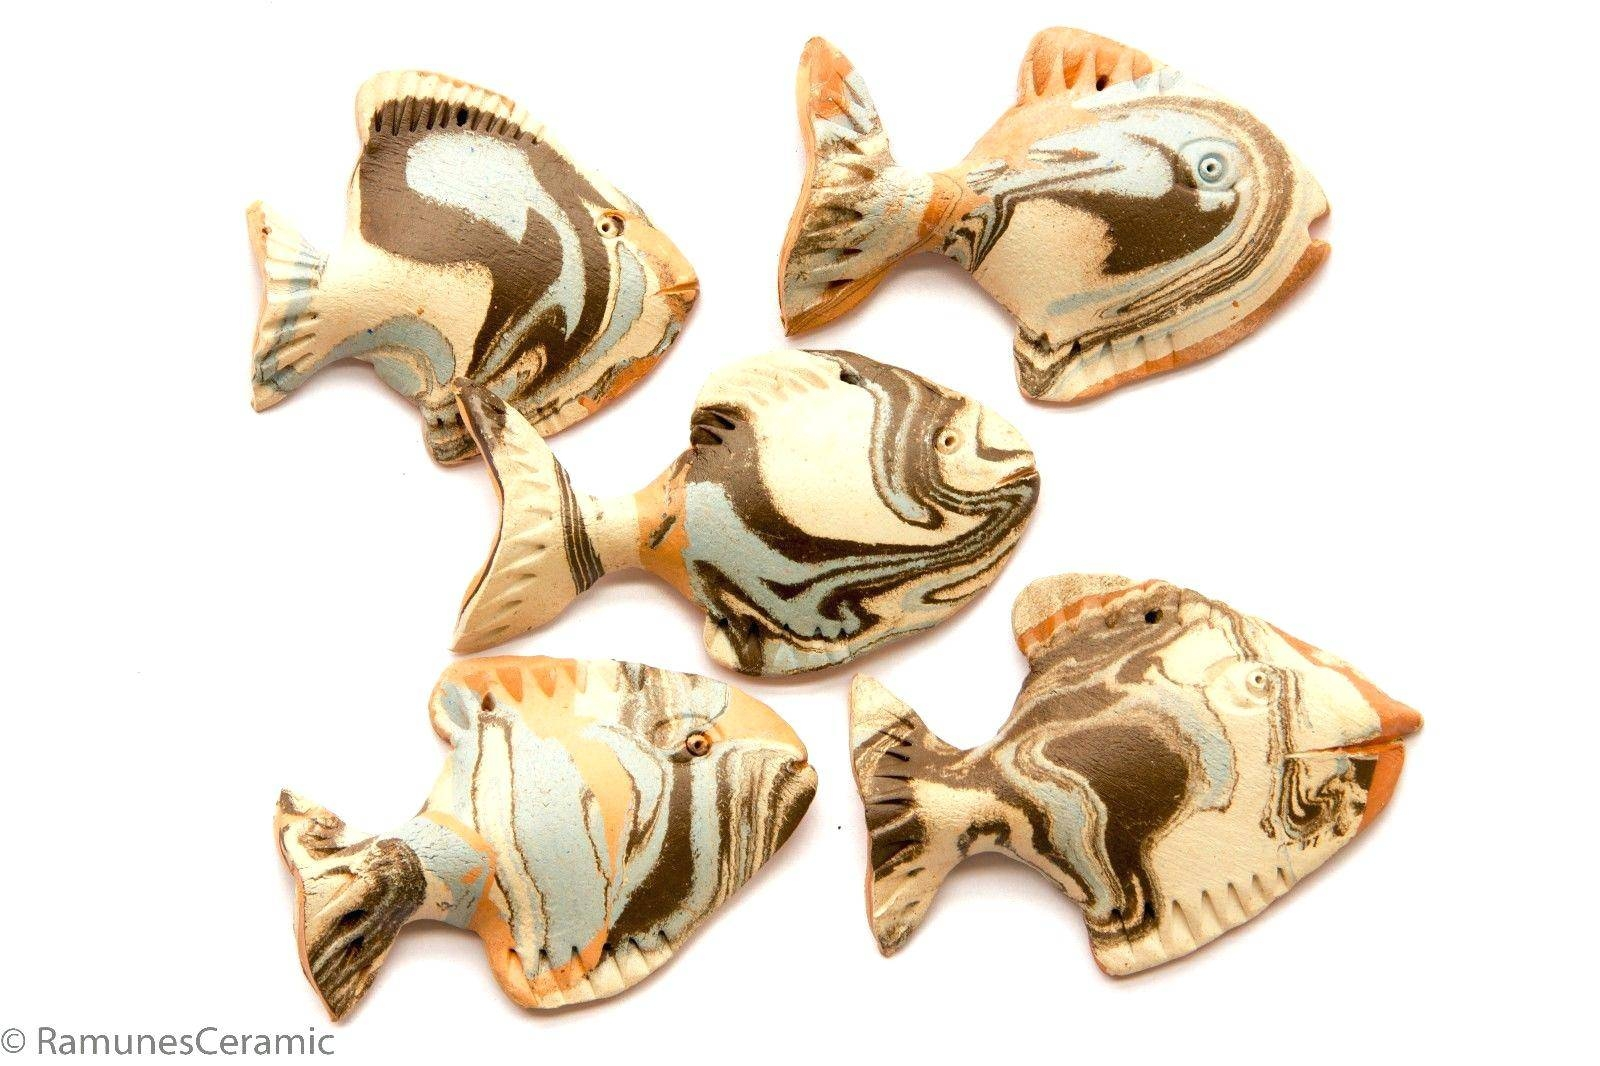 Wall Decor : Wall Ideas Amazing Trendy Carved Wooden Fish Wall Art Inside 2018 Fish 3D Wall Art (View 20 of 20)